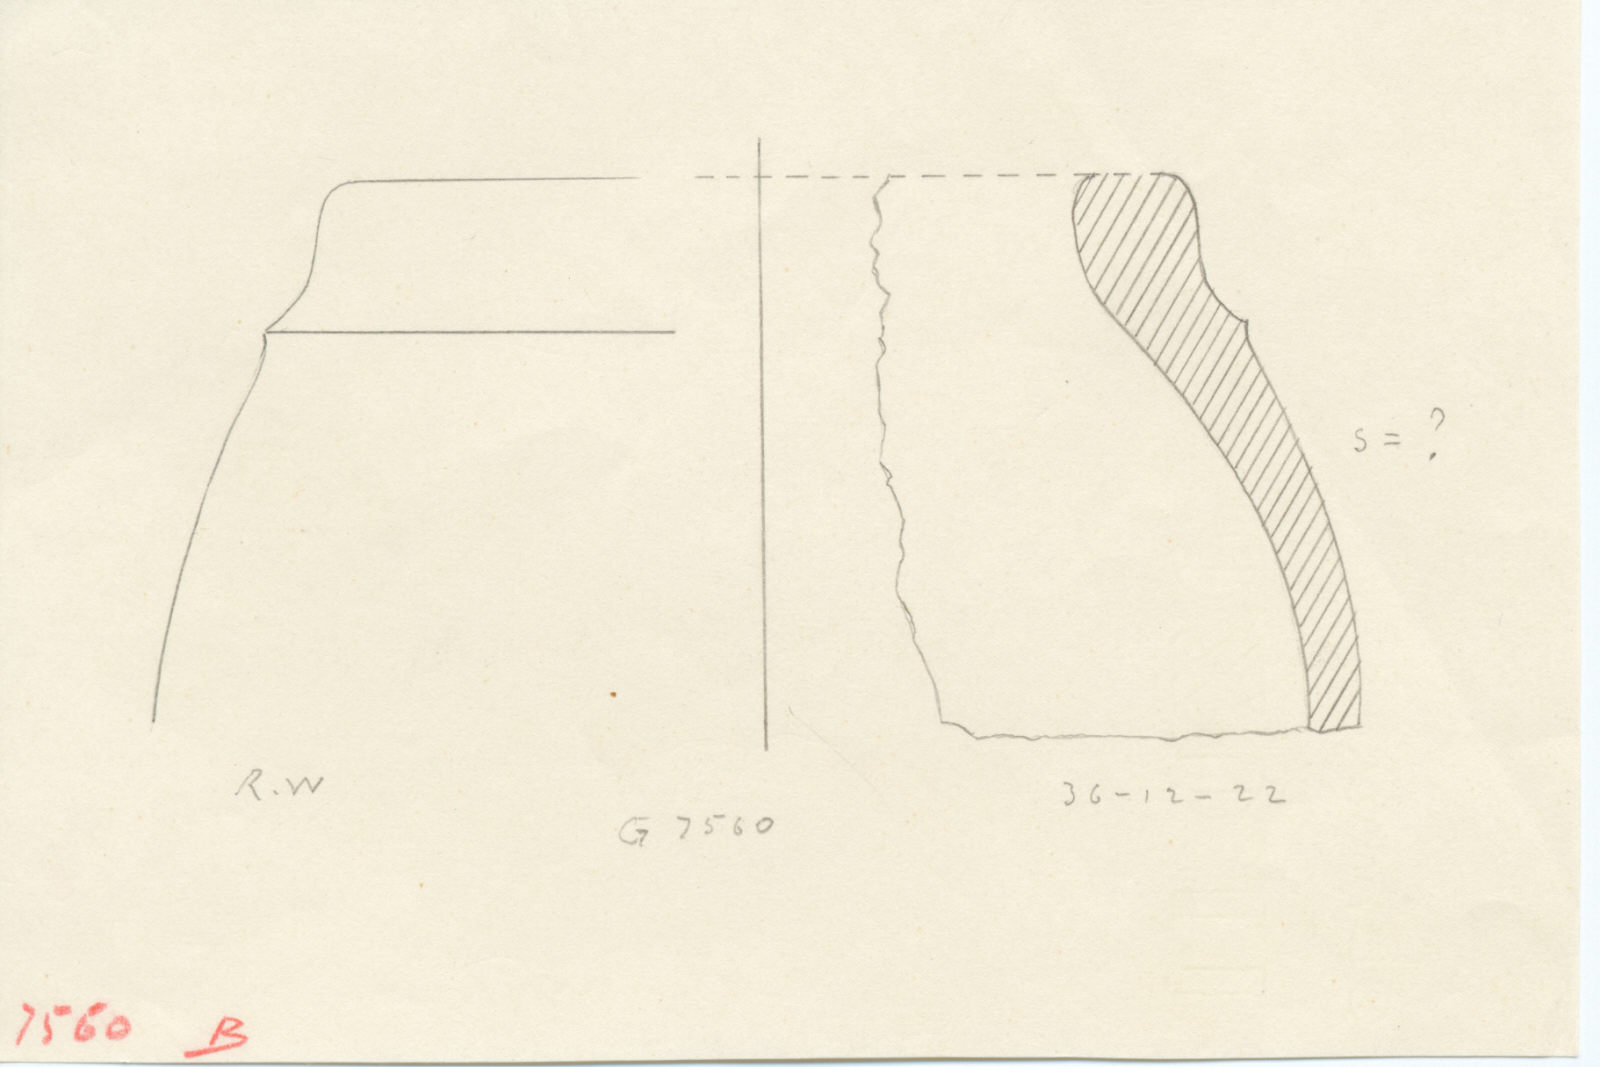 Drawings: G 7560, Shaft B: pottery, basin fragment